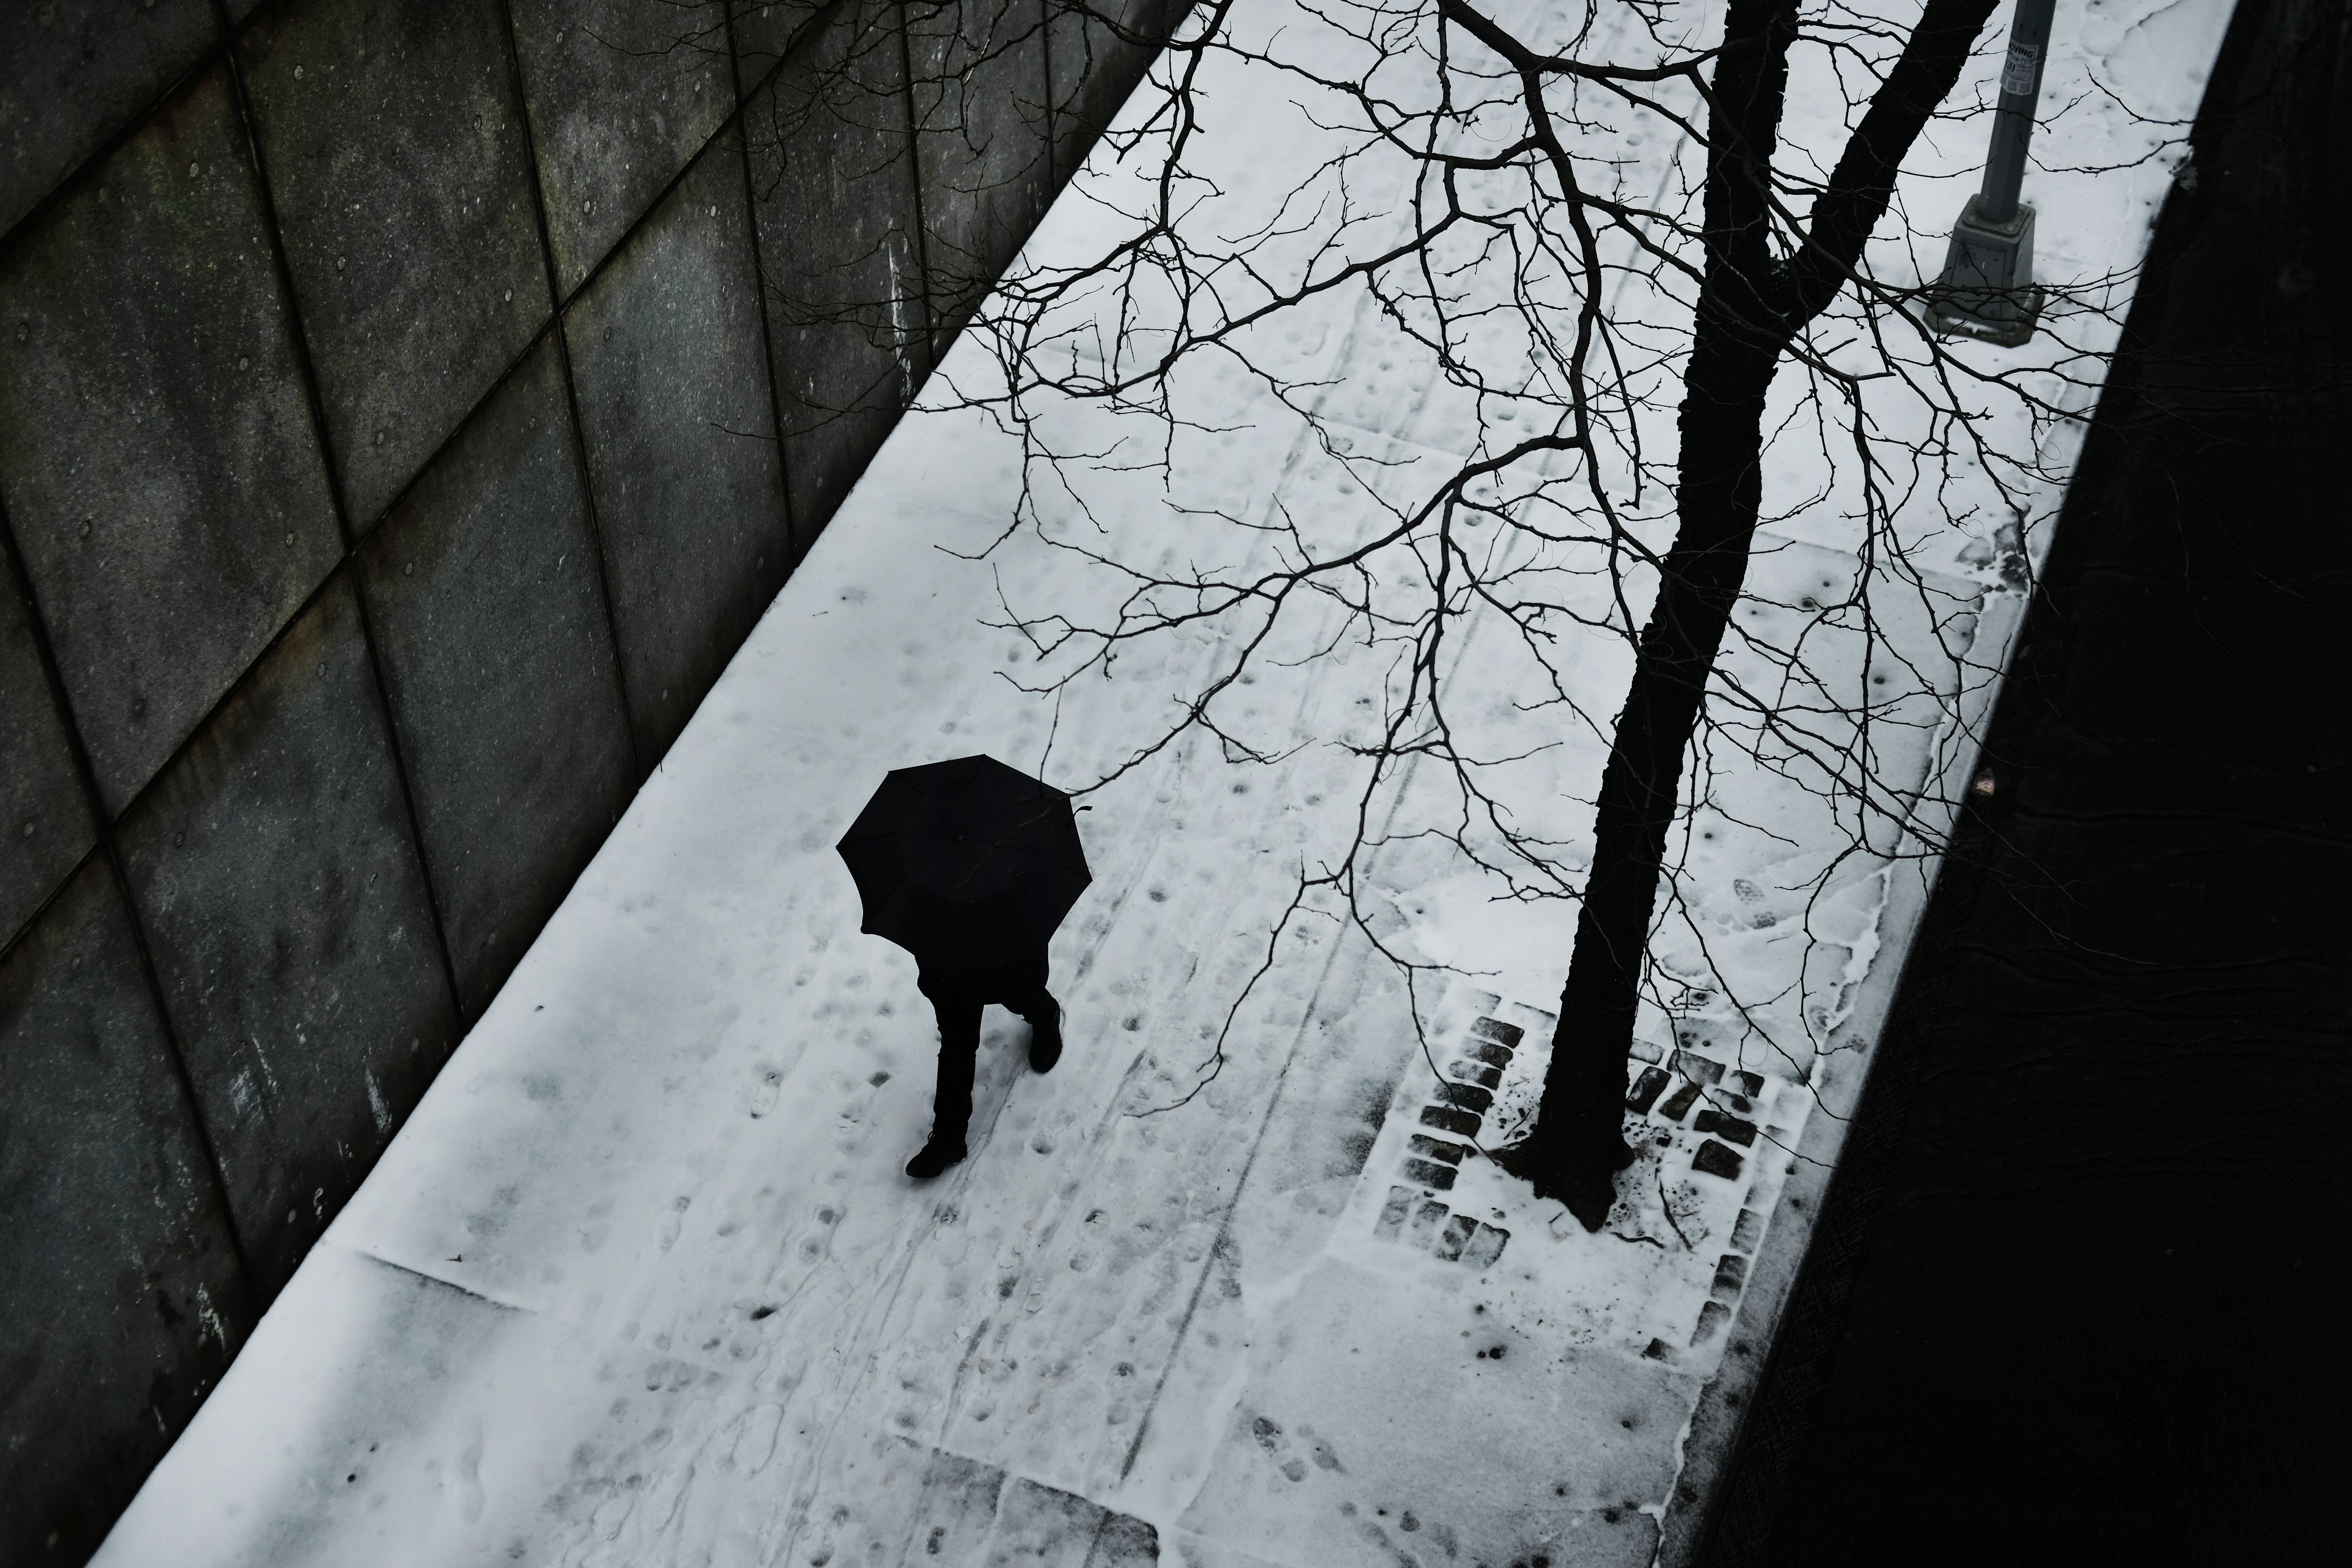 Winter Storms Brings Snow To New York City